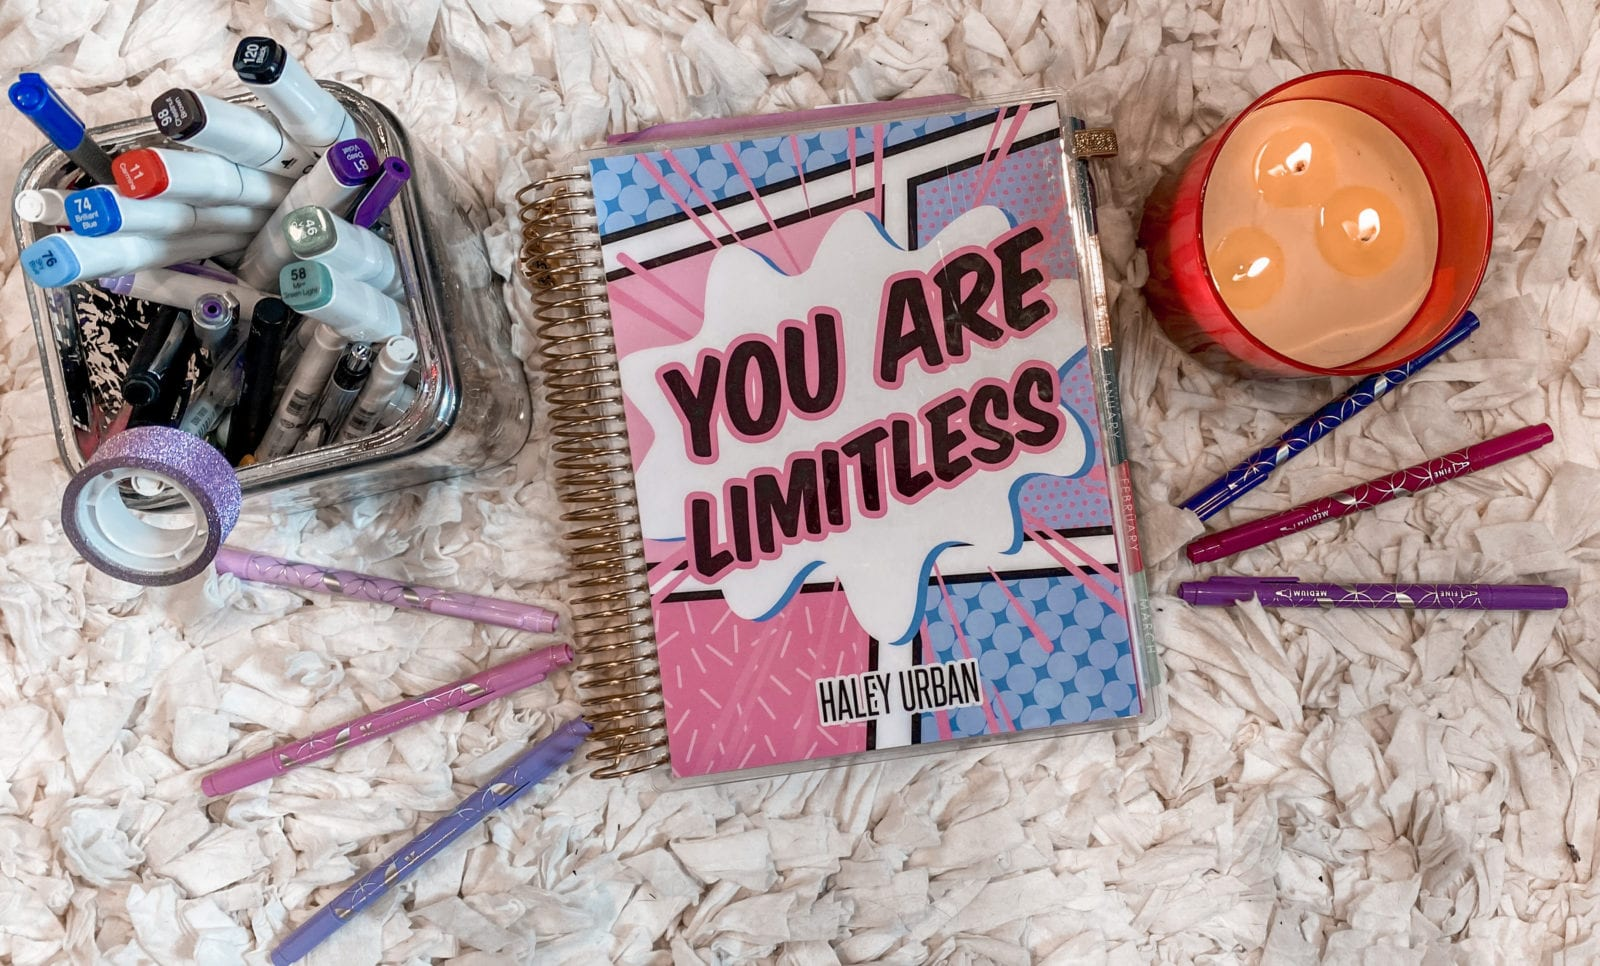 In this image, an Erin Condren life planner is laying next to a 3-wick candle, and a ton of felt-tip markers from Erin Condren.